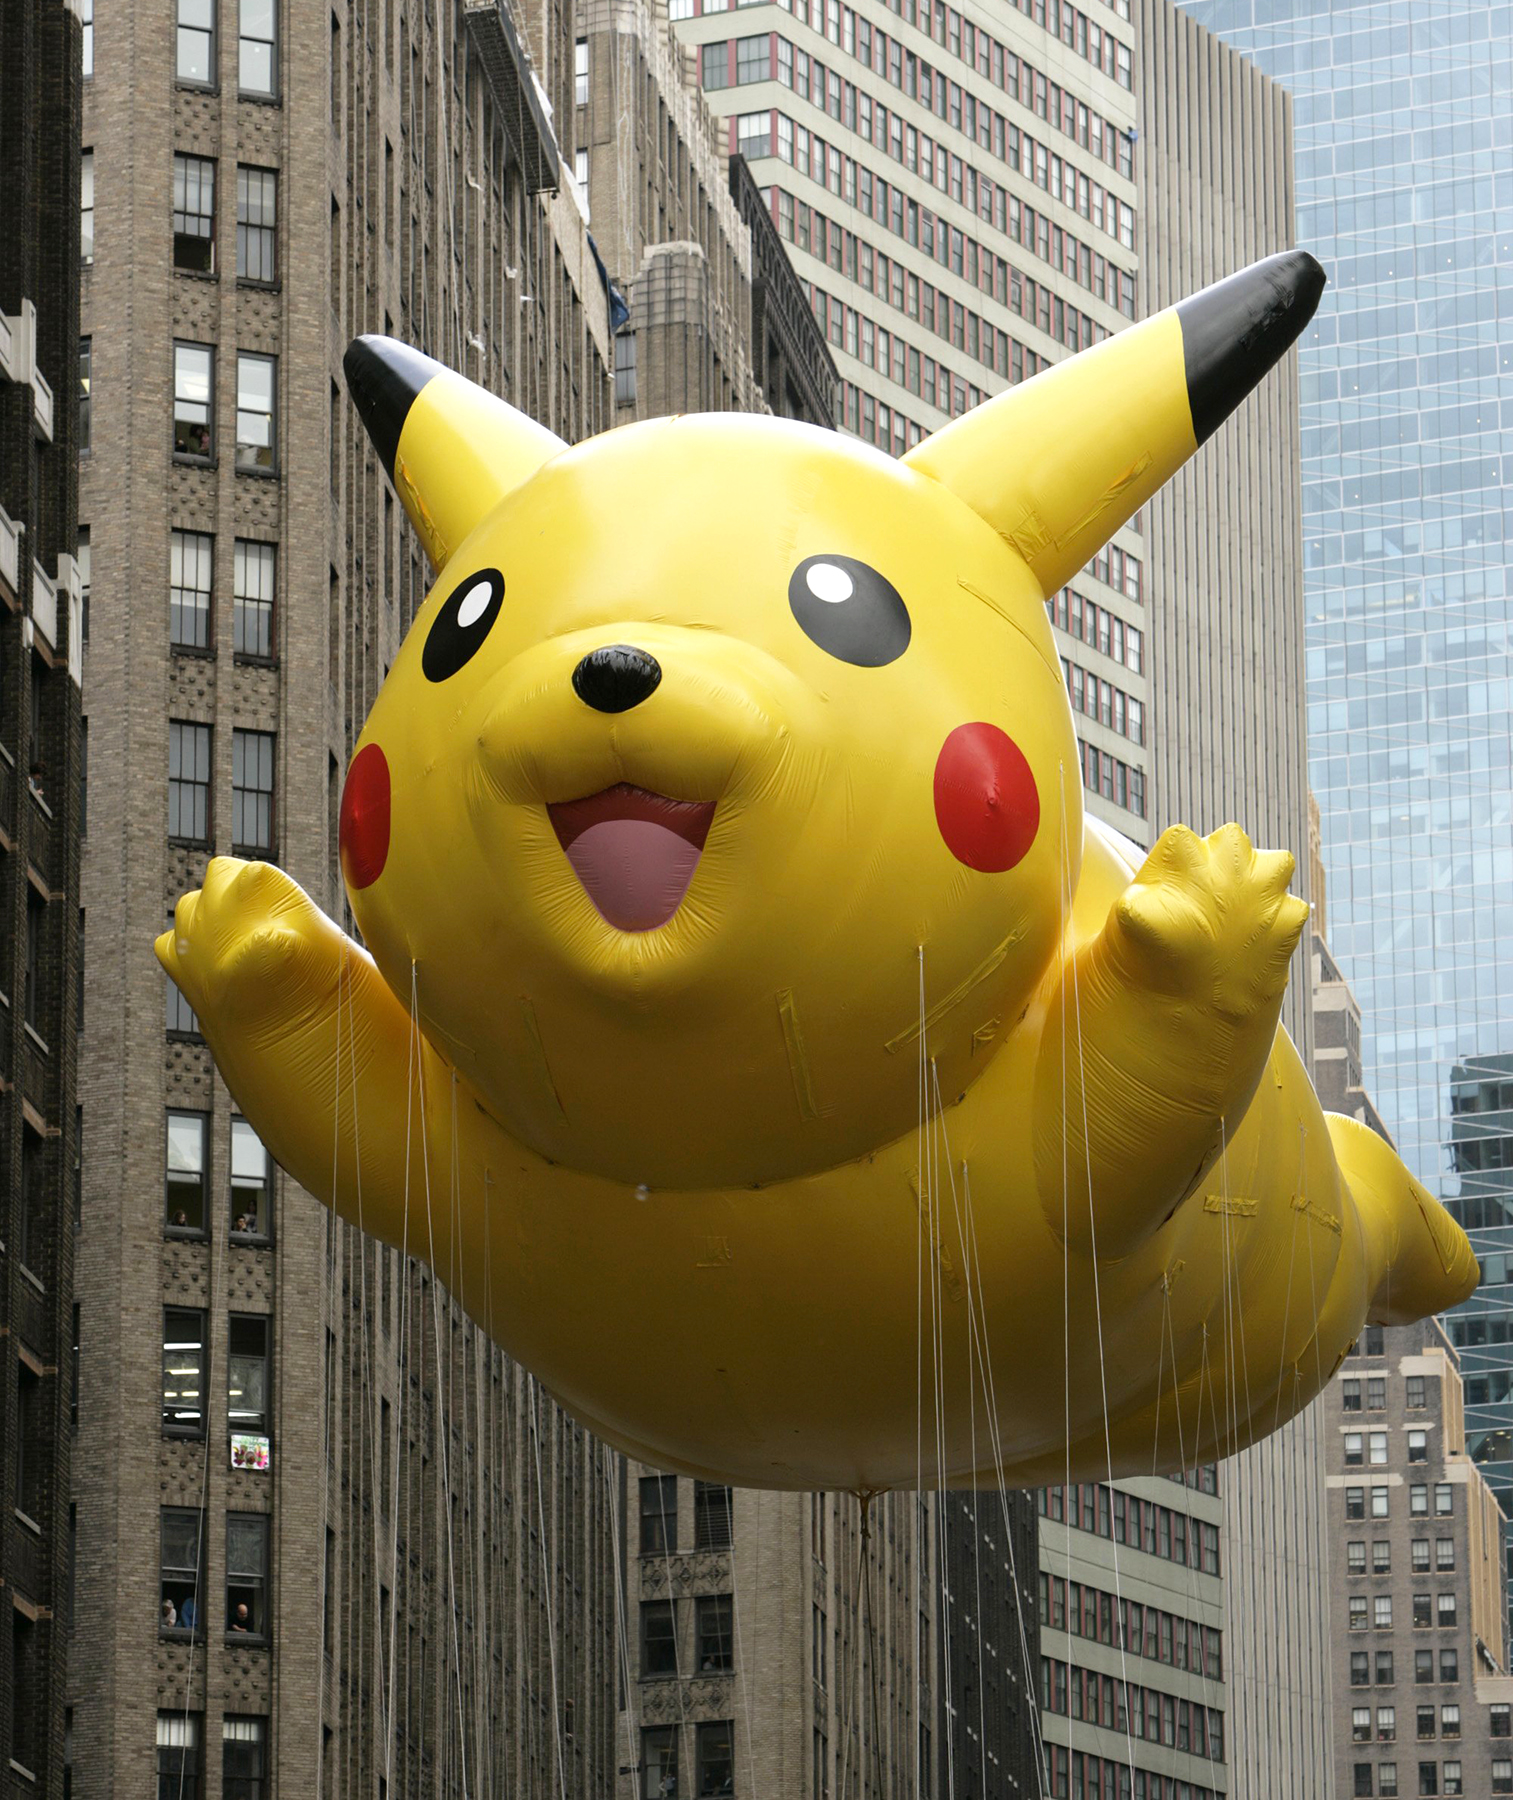 Pikachu balloon, NYC